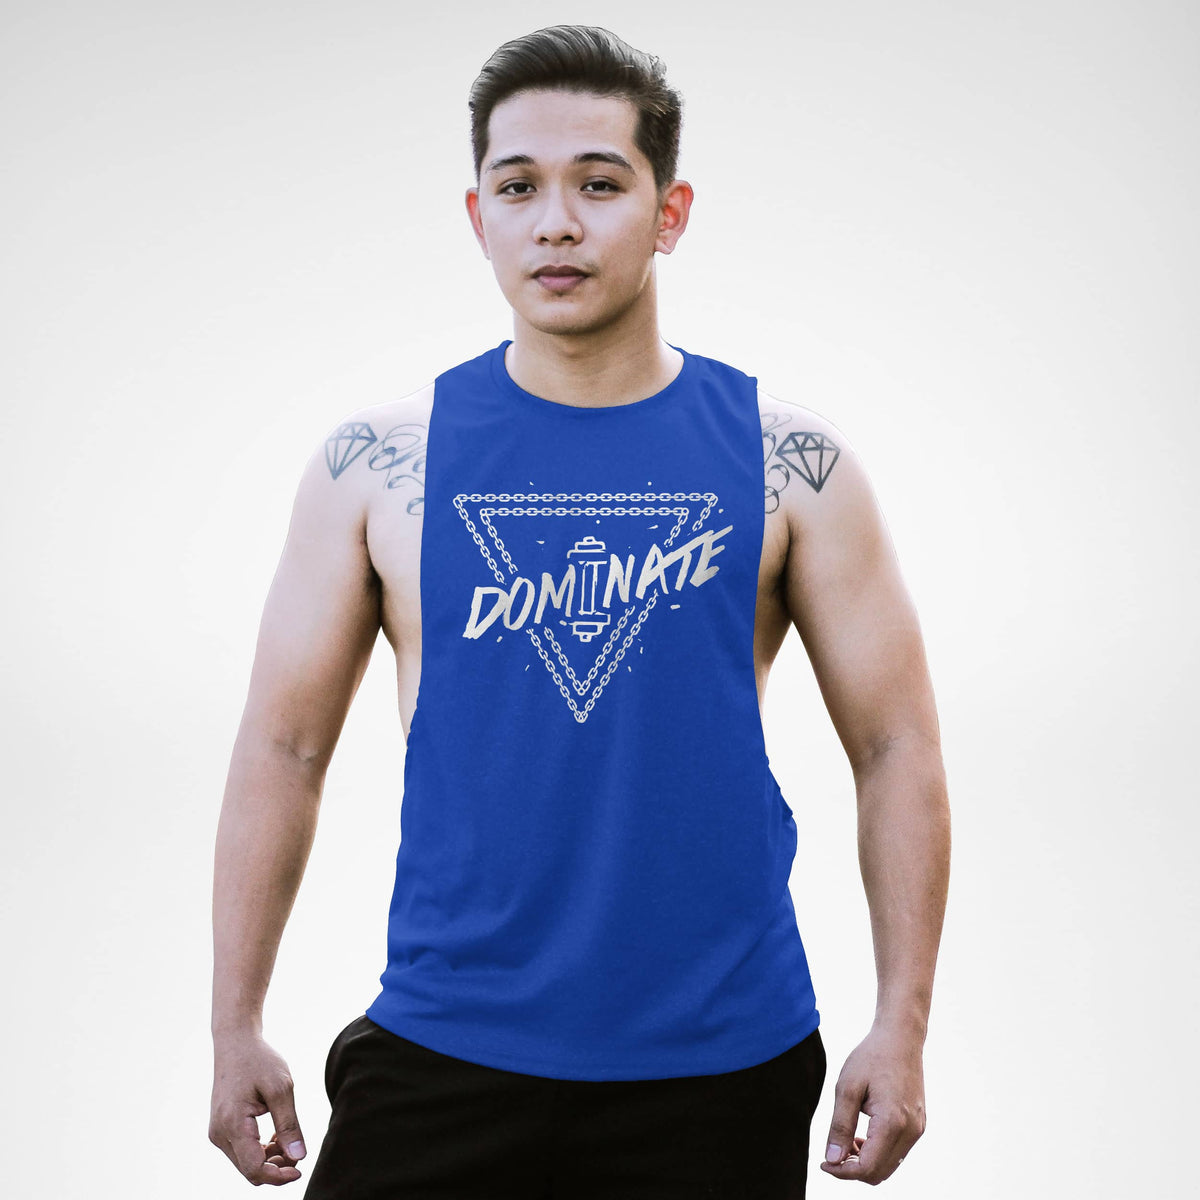 AM154 Dominate Openside Tank Top